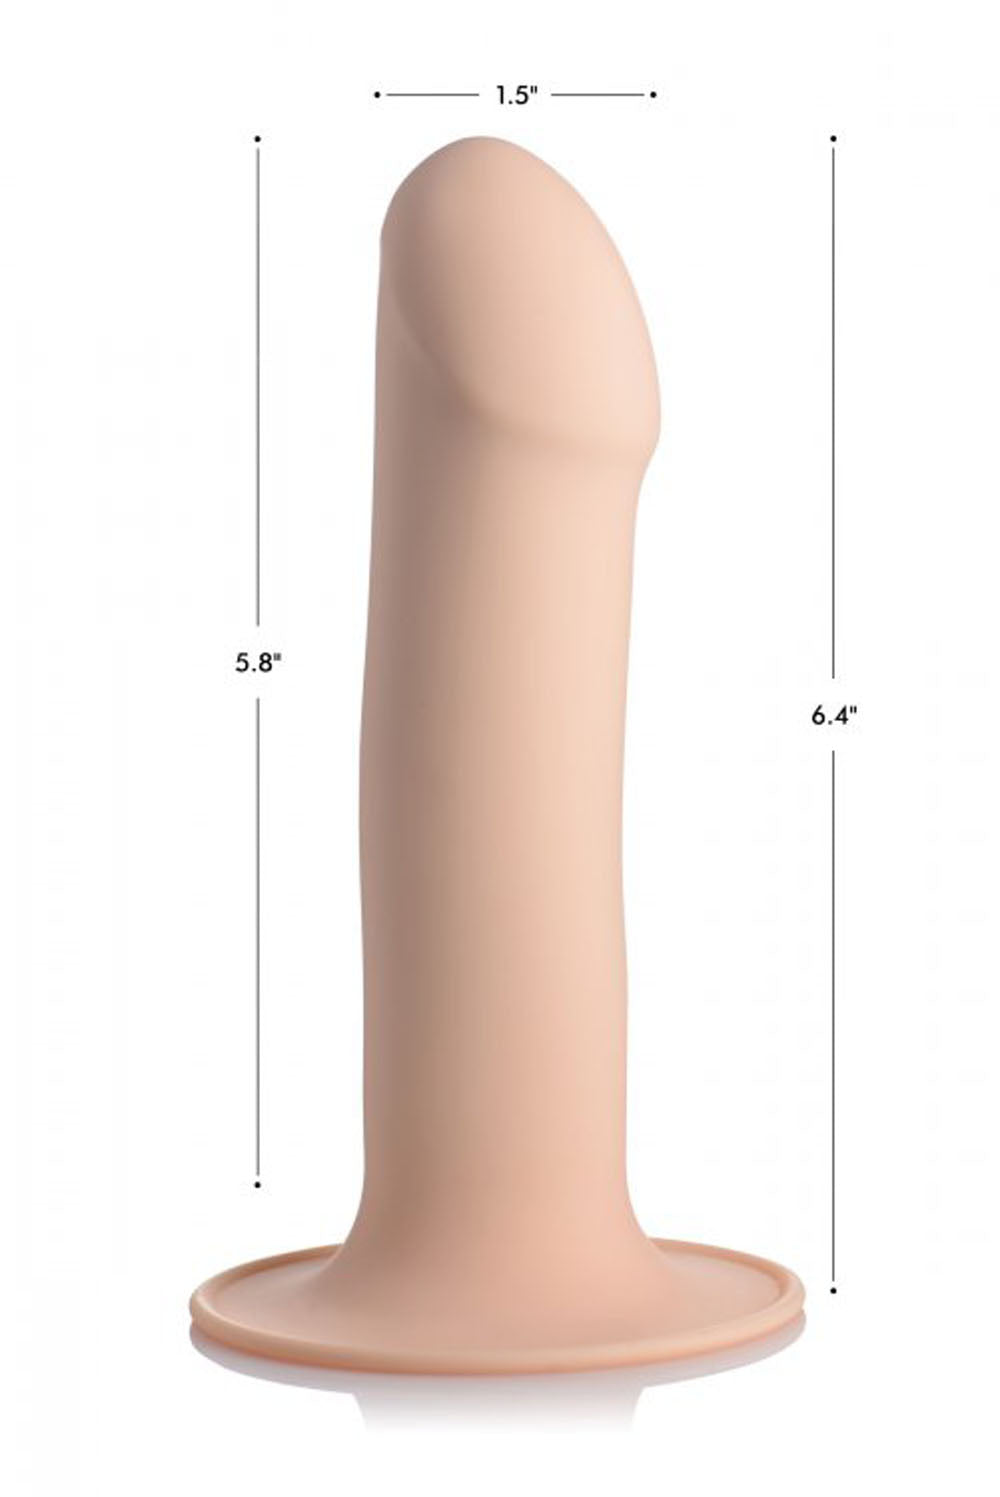 Squeezable Phallic Dildo - Light